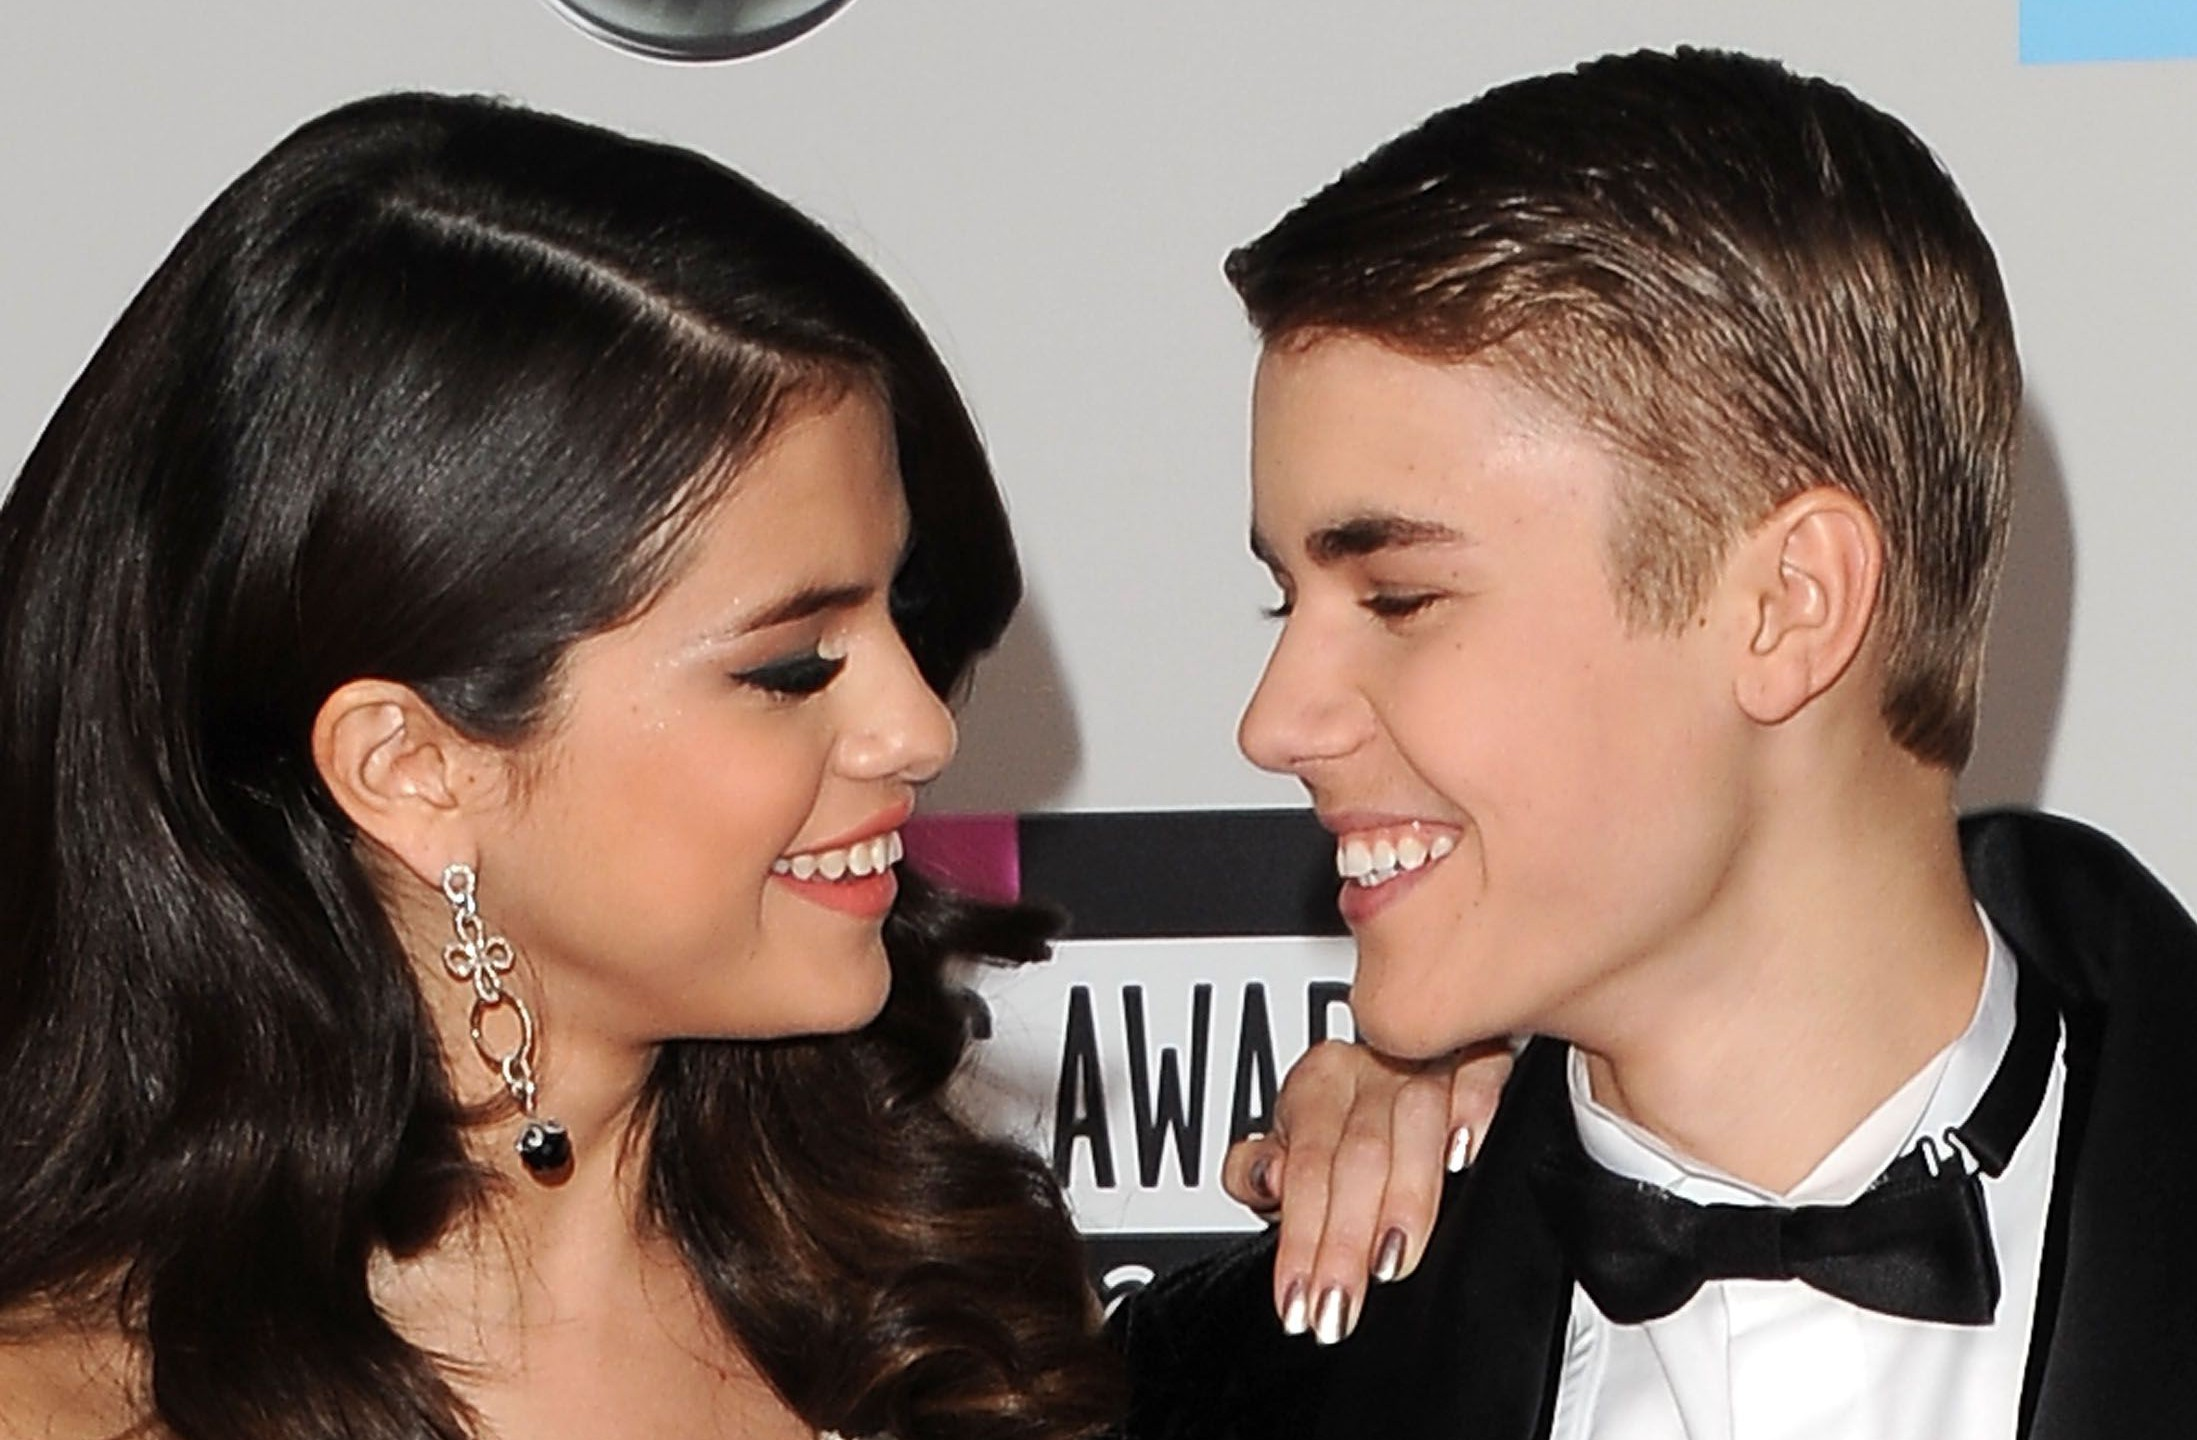 Justin Bieber is clearly not over Selena Gomez judging by this throwback snap